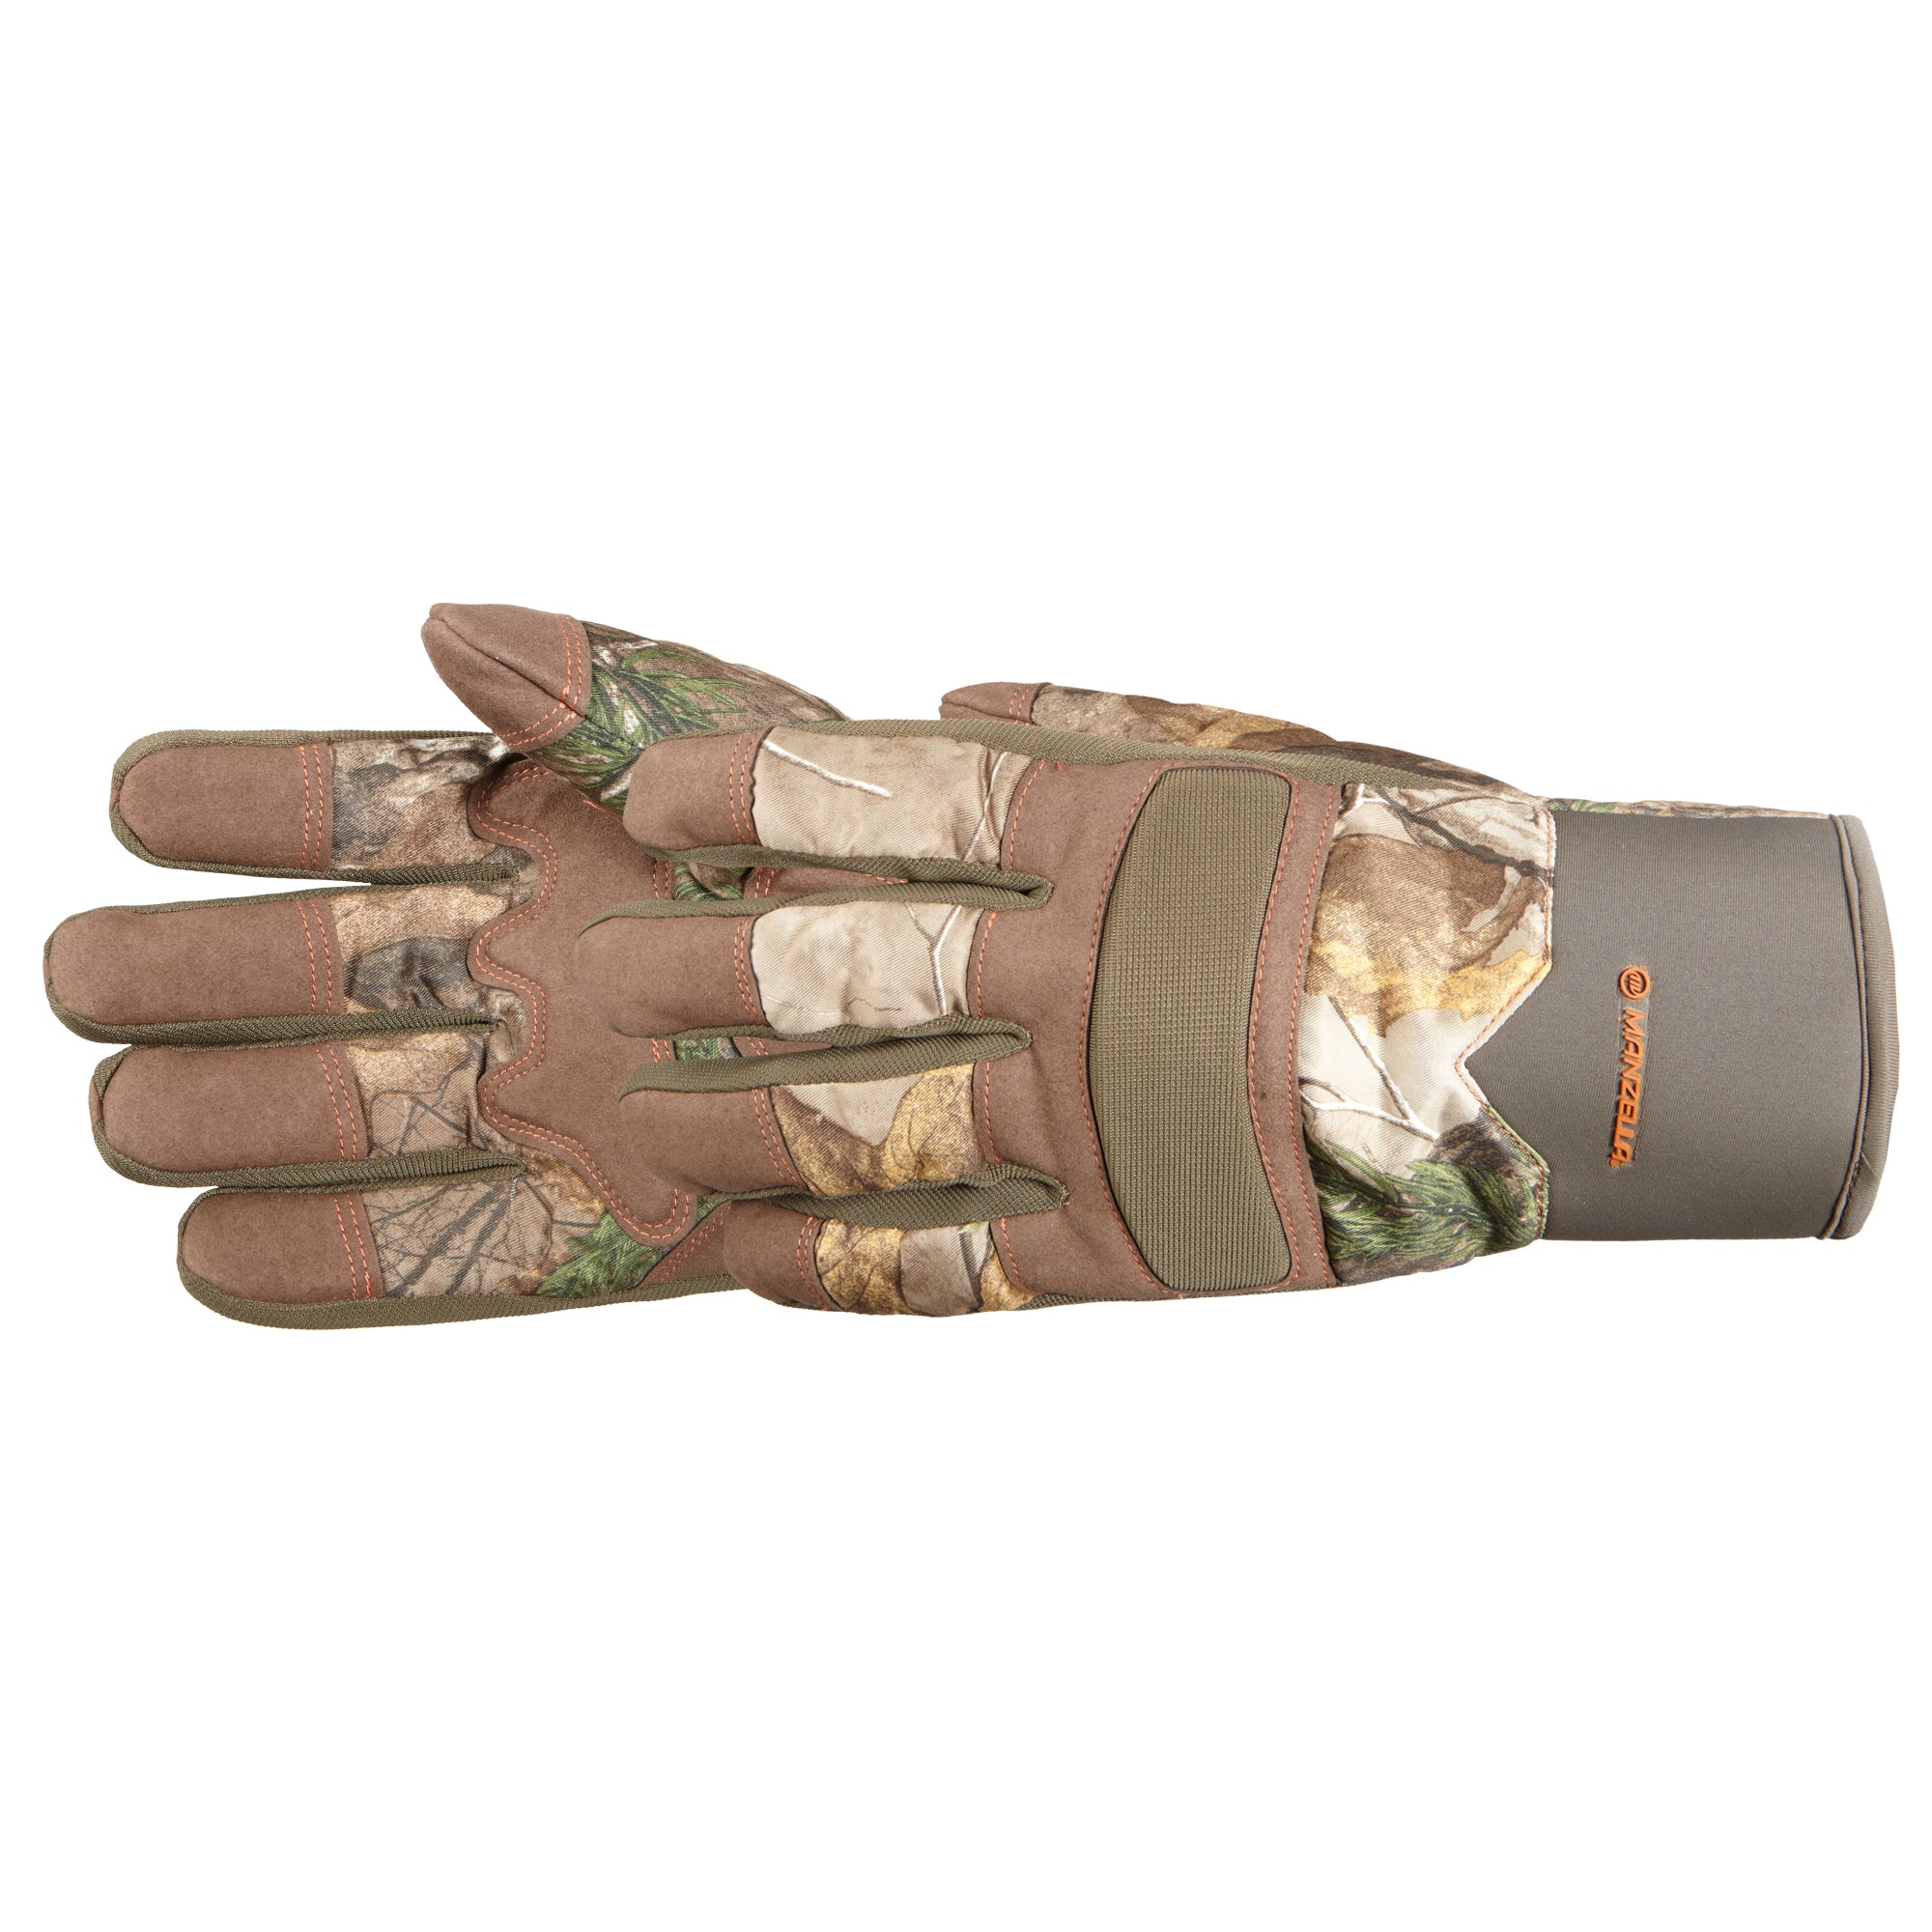 Manzella PREDATOR Hunting Gloves for Men